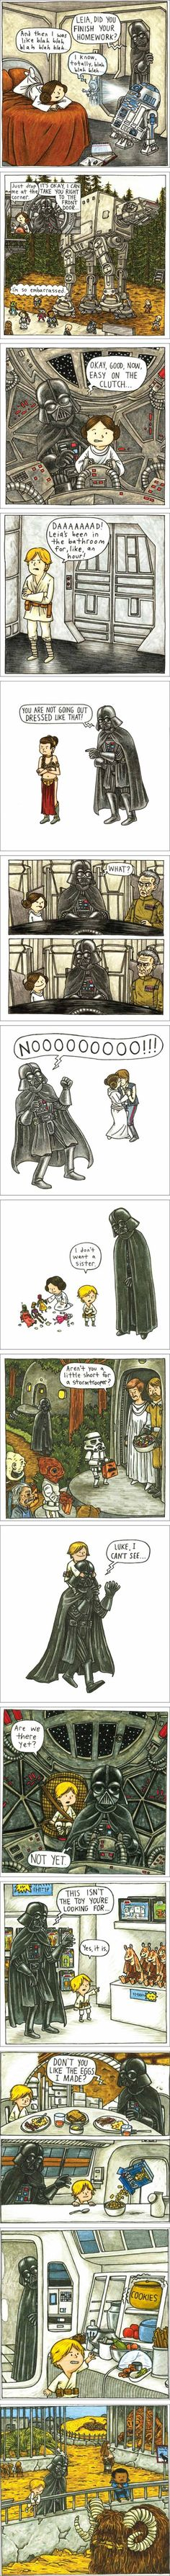 If Darth Vader Was a Good Father... this is so funny and cute!